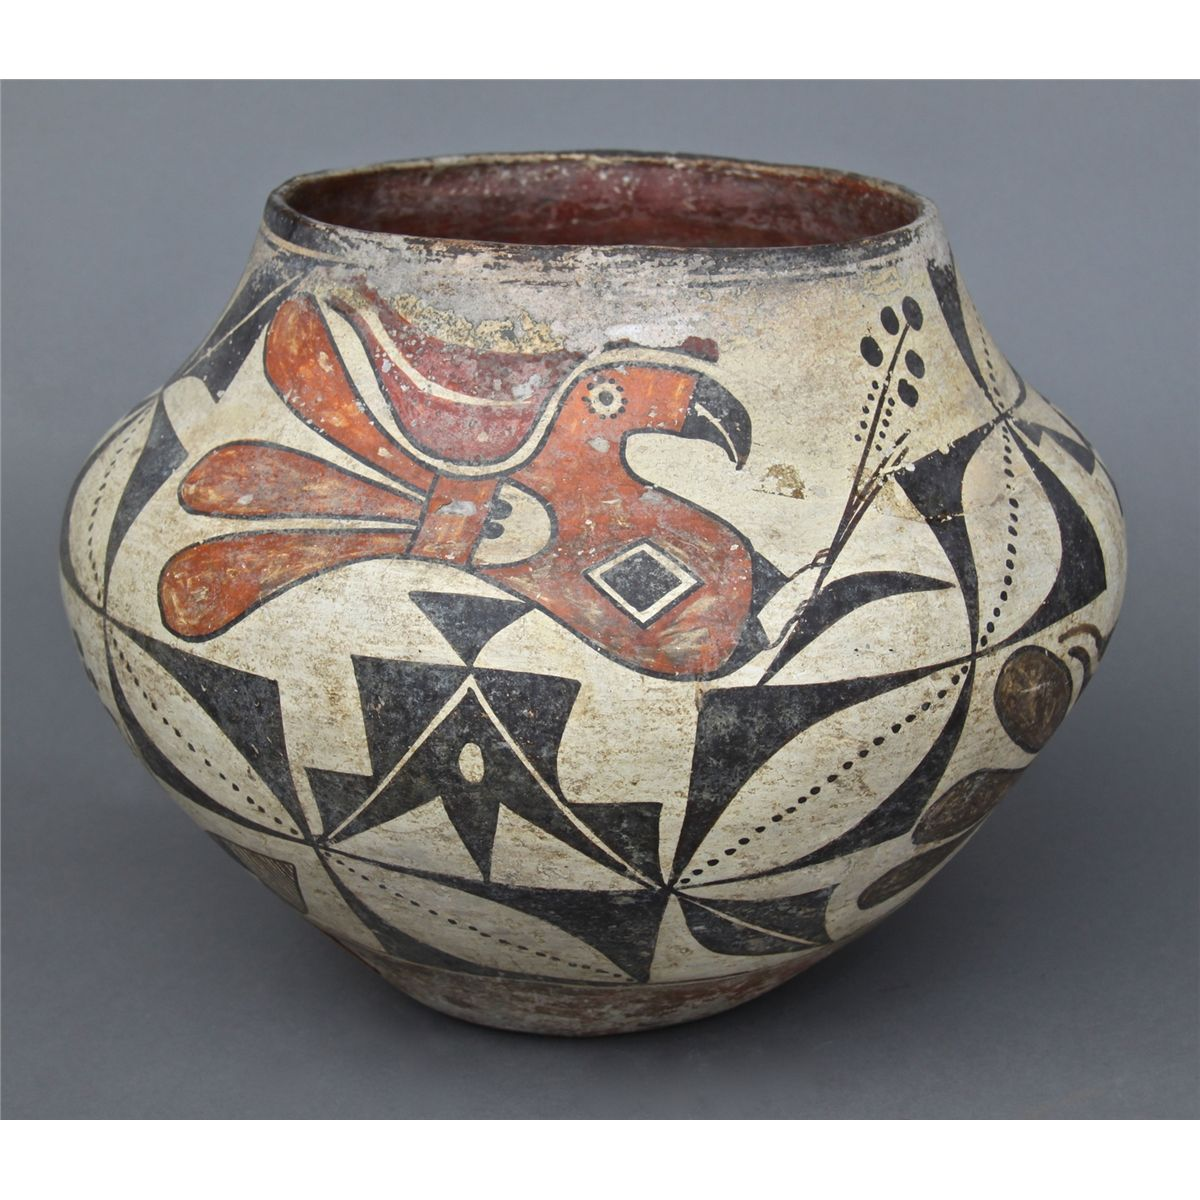 Native american pottery history fieldstation native american pottery history buycottarizona